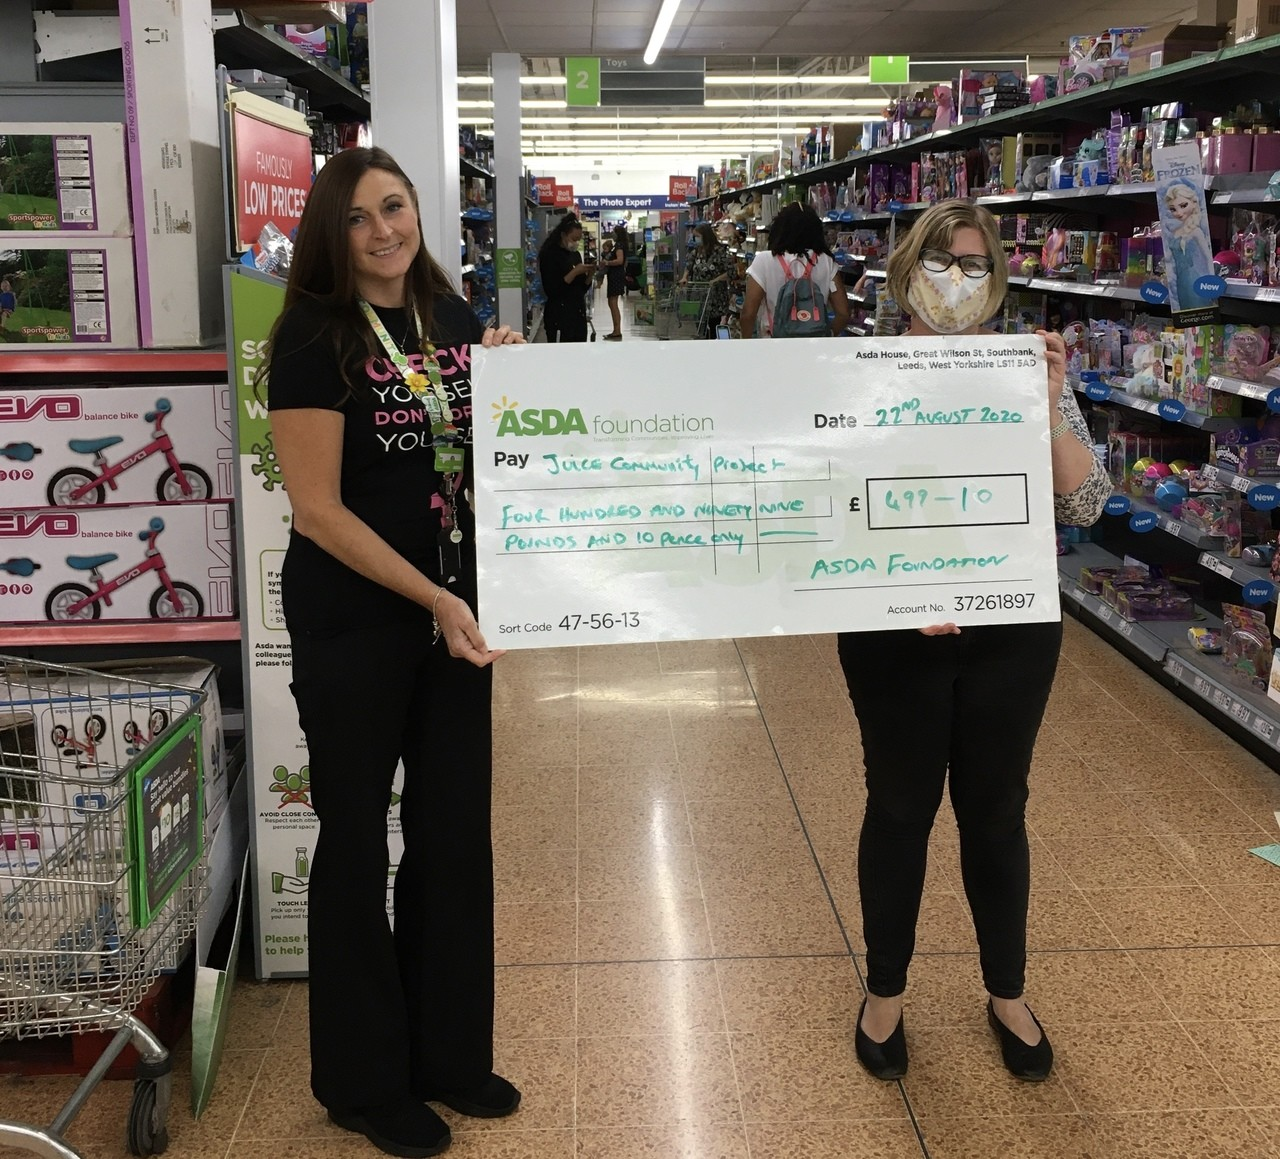 Heathy holiday ASDA Foundation Grant for Juice Community Project  | Asda Longwell Green